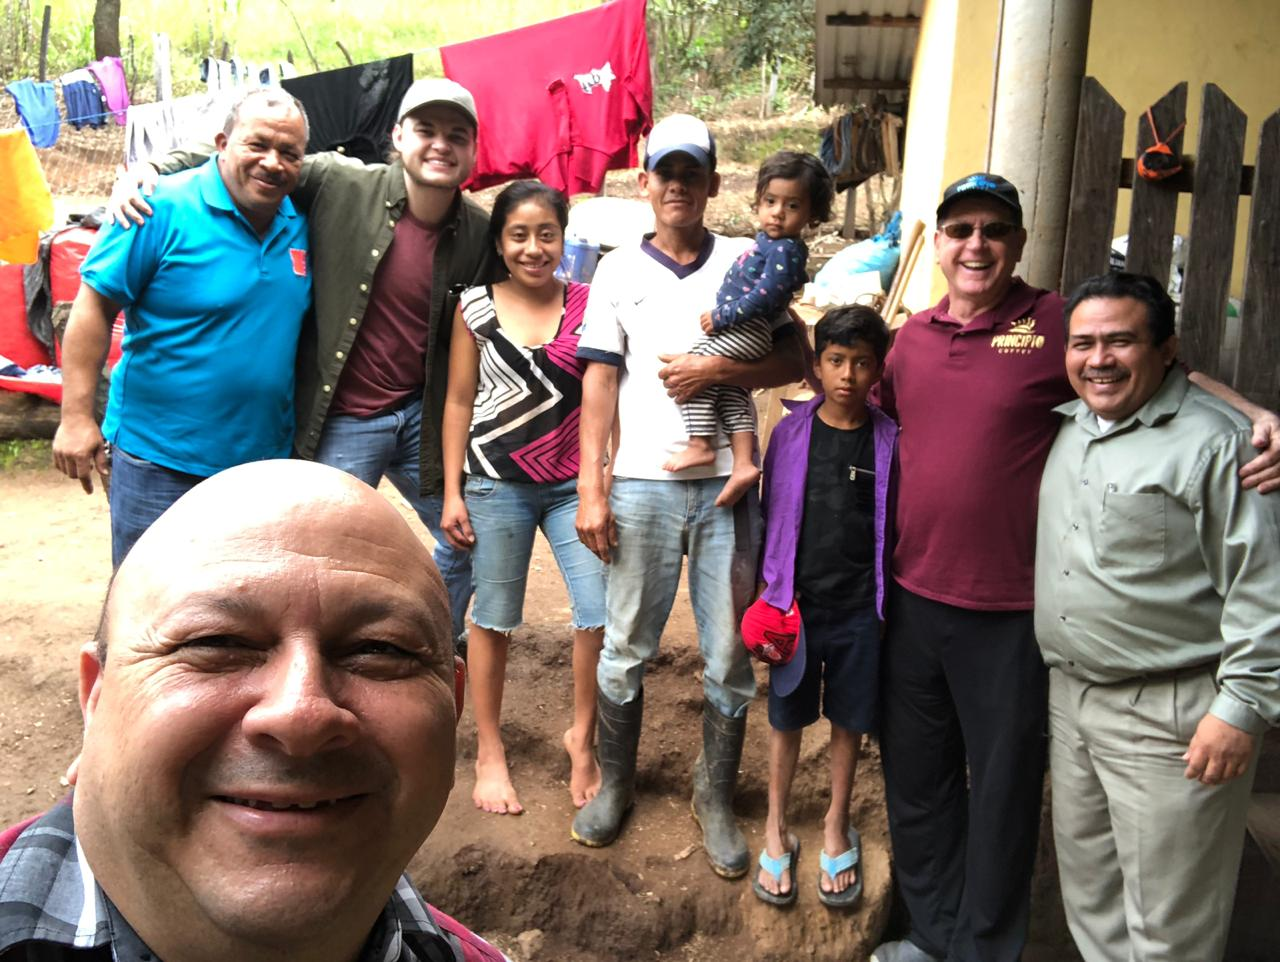 Pastor Allan Lorenzana of Honduras with our National Director, Jorge Amador, with a family in Honduras as they work together with Connect Global to share the love of Jesus and help others to do the same.